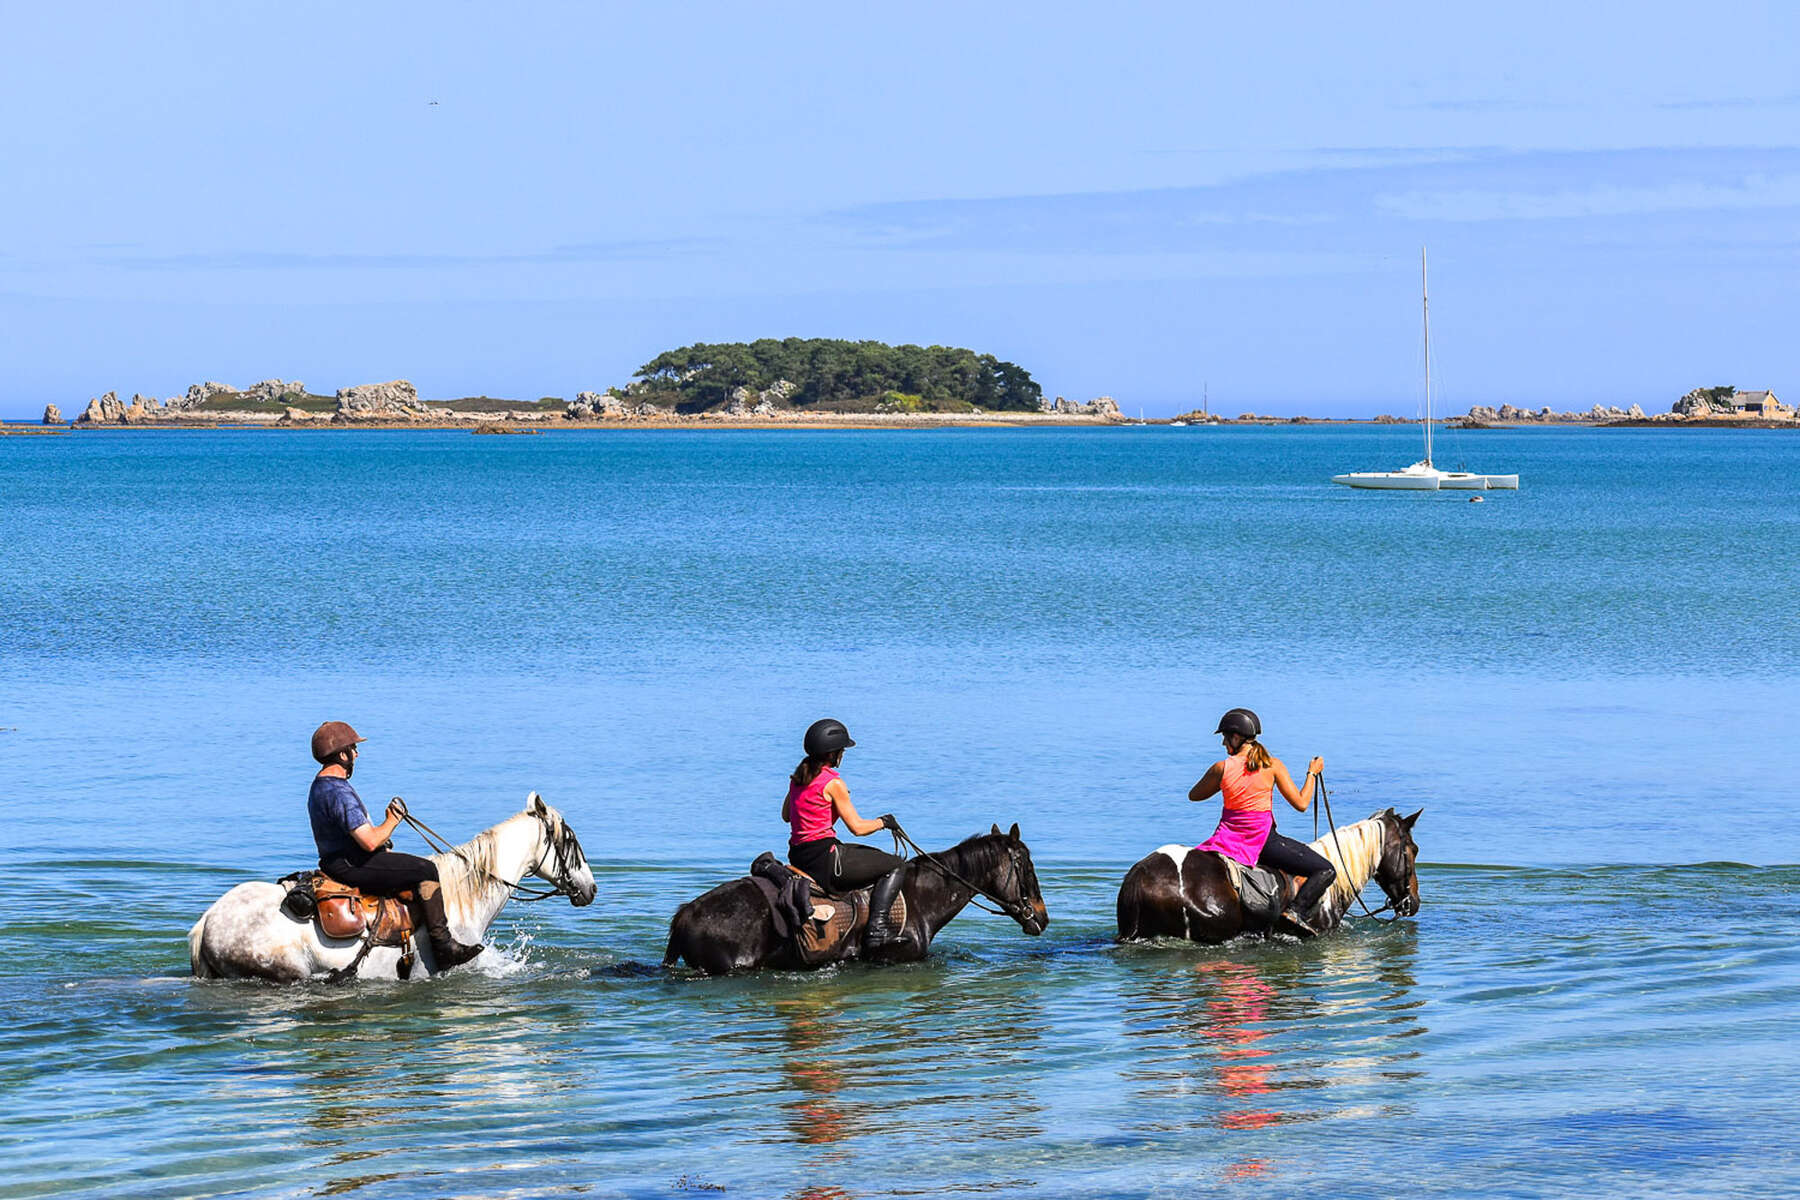 Horses and riders in the ocean in brittany